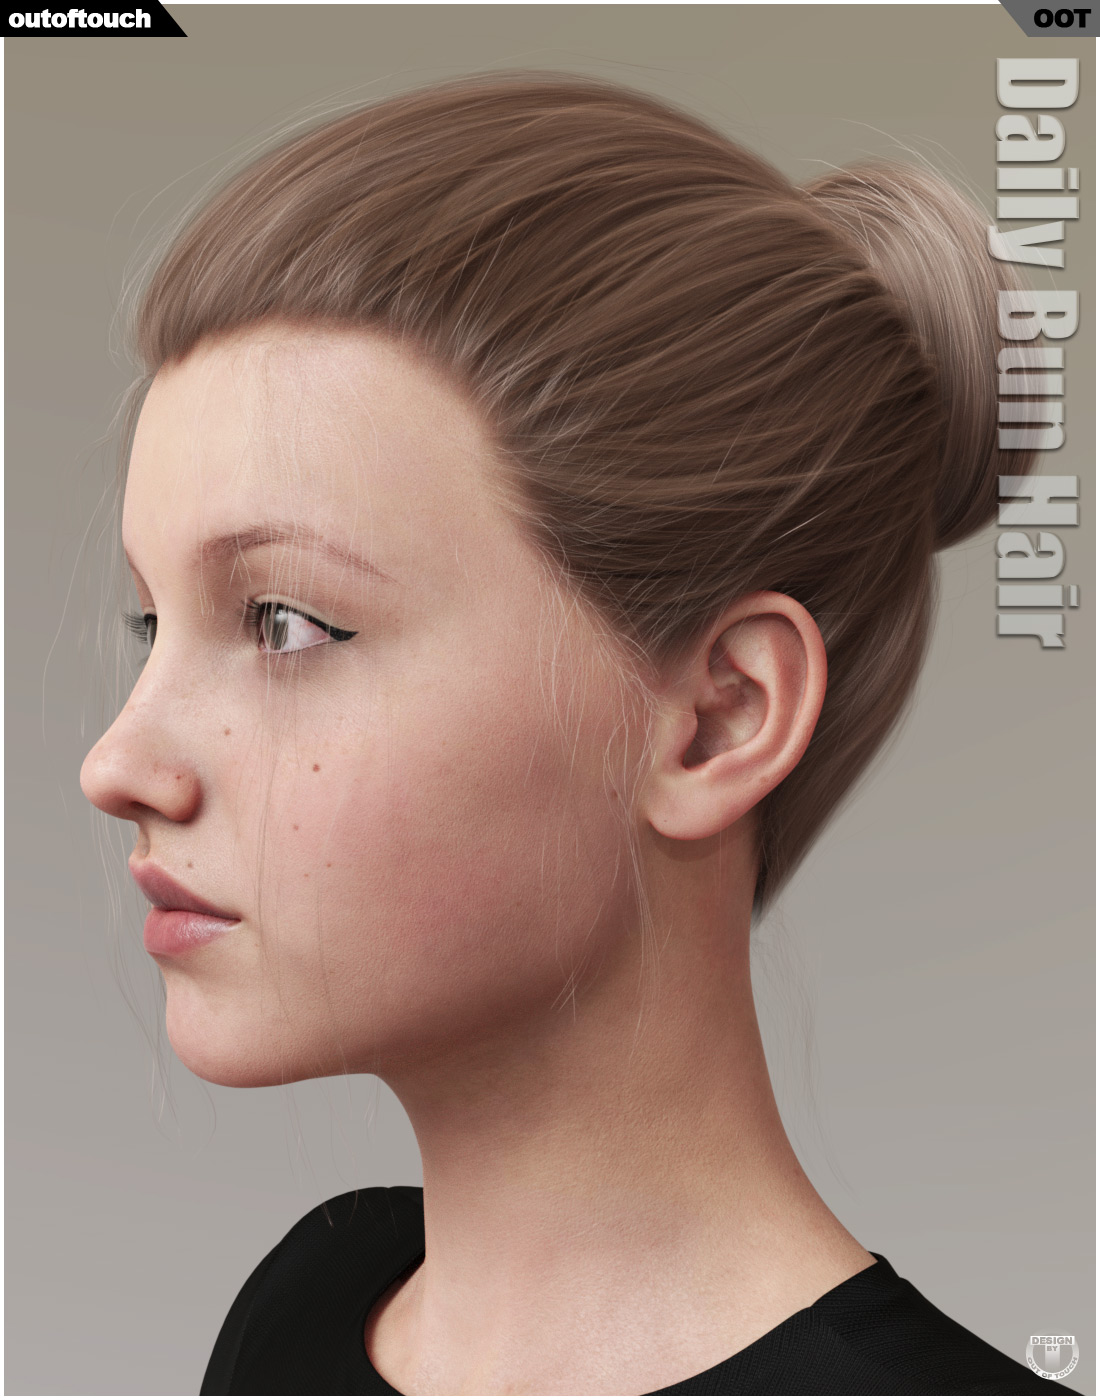 Daily Bun Hair for Genesis 3 and 8 Females 3D Figure Assets